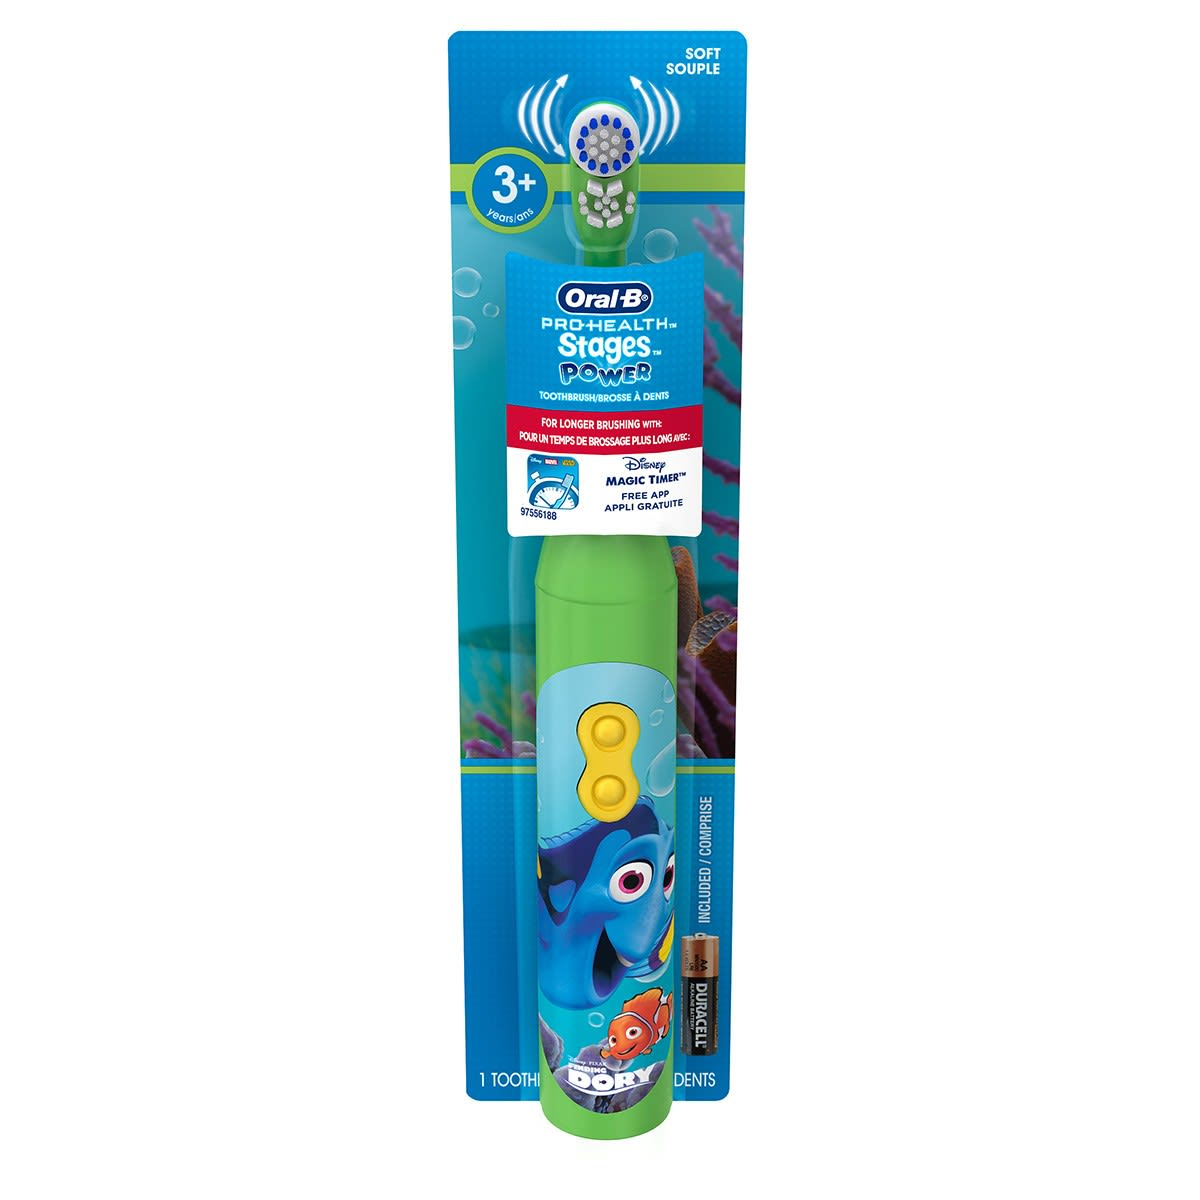 Oral-B Pro-Health Stages Disney Finding Dory Battery Toothbrush